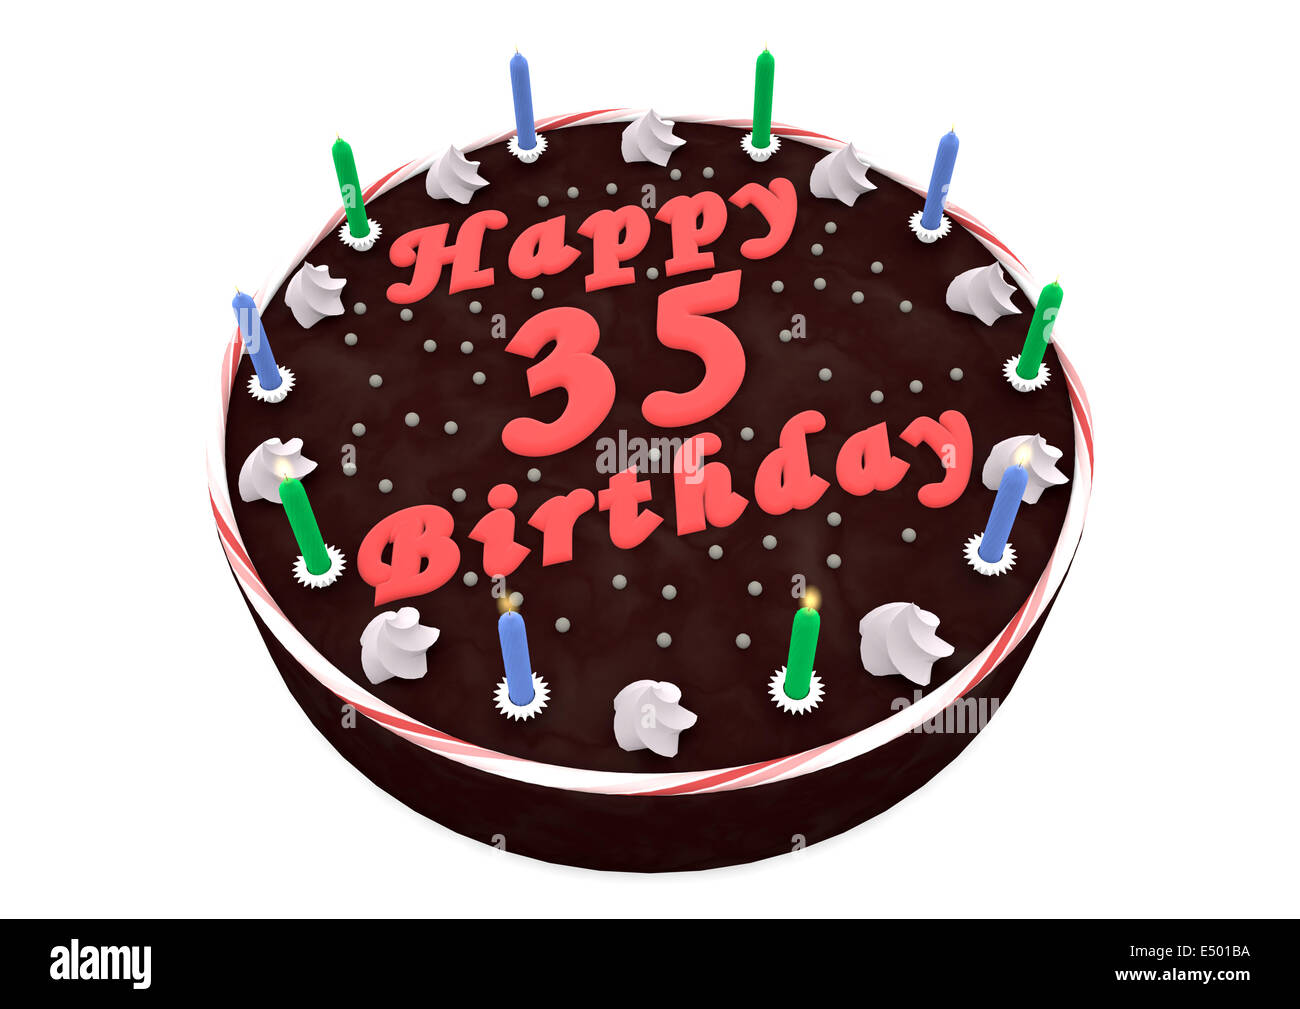 Awesome Chocolate Cake For 35Th Birthday Stock Photo 71915854 Alamy Personalised Birthday Cards Sponlily Jamesorg